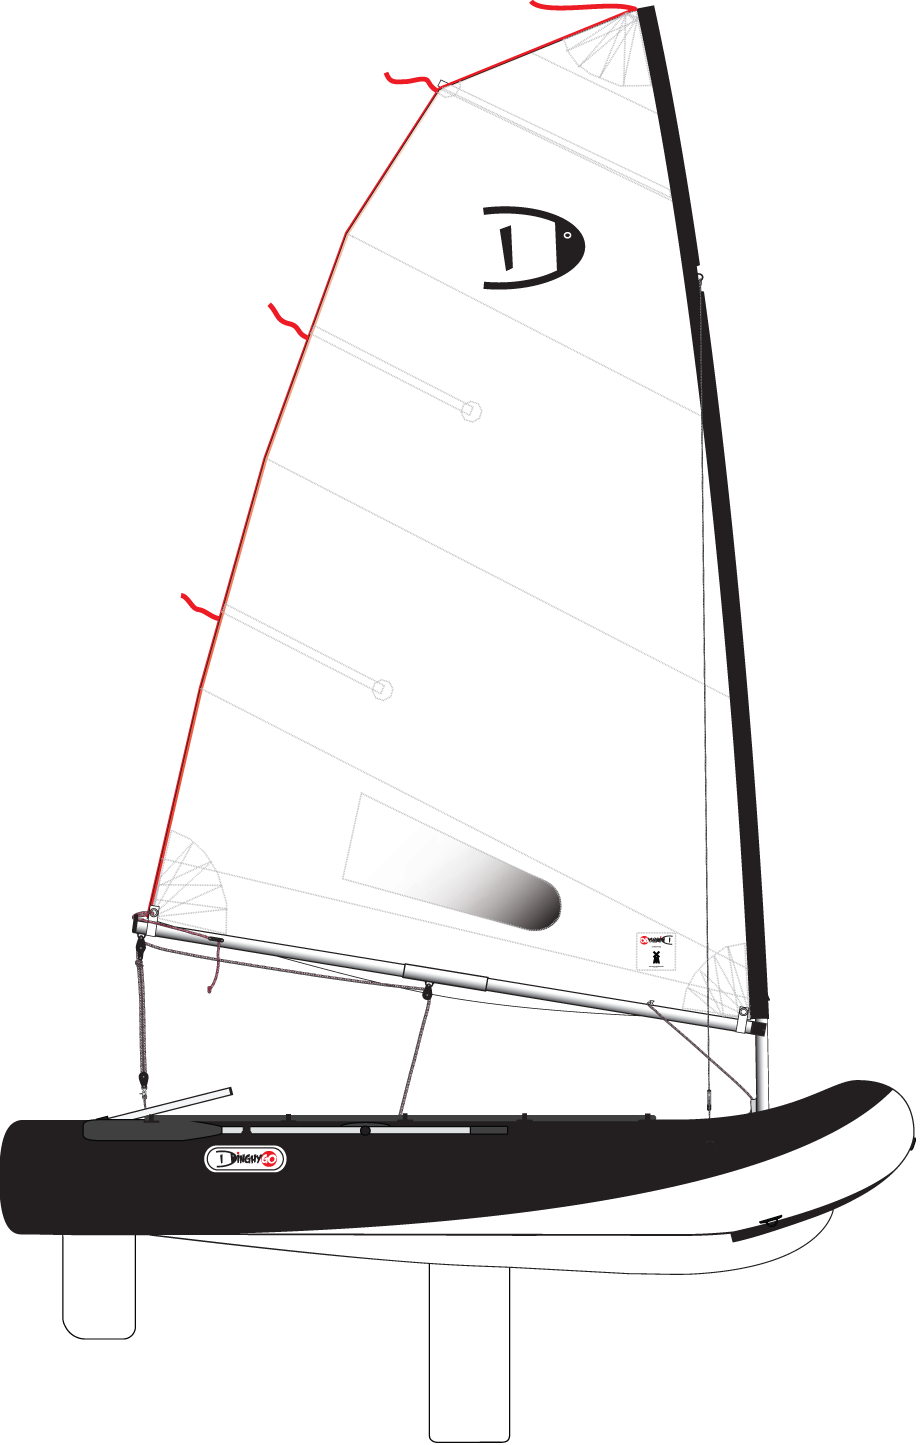 DinghyGo Orca (reservering levering april 2019)